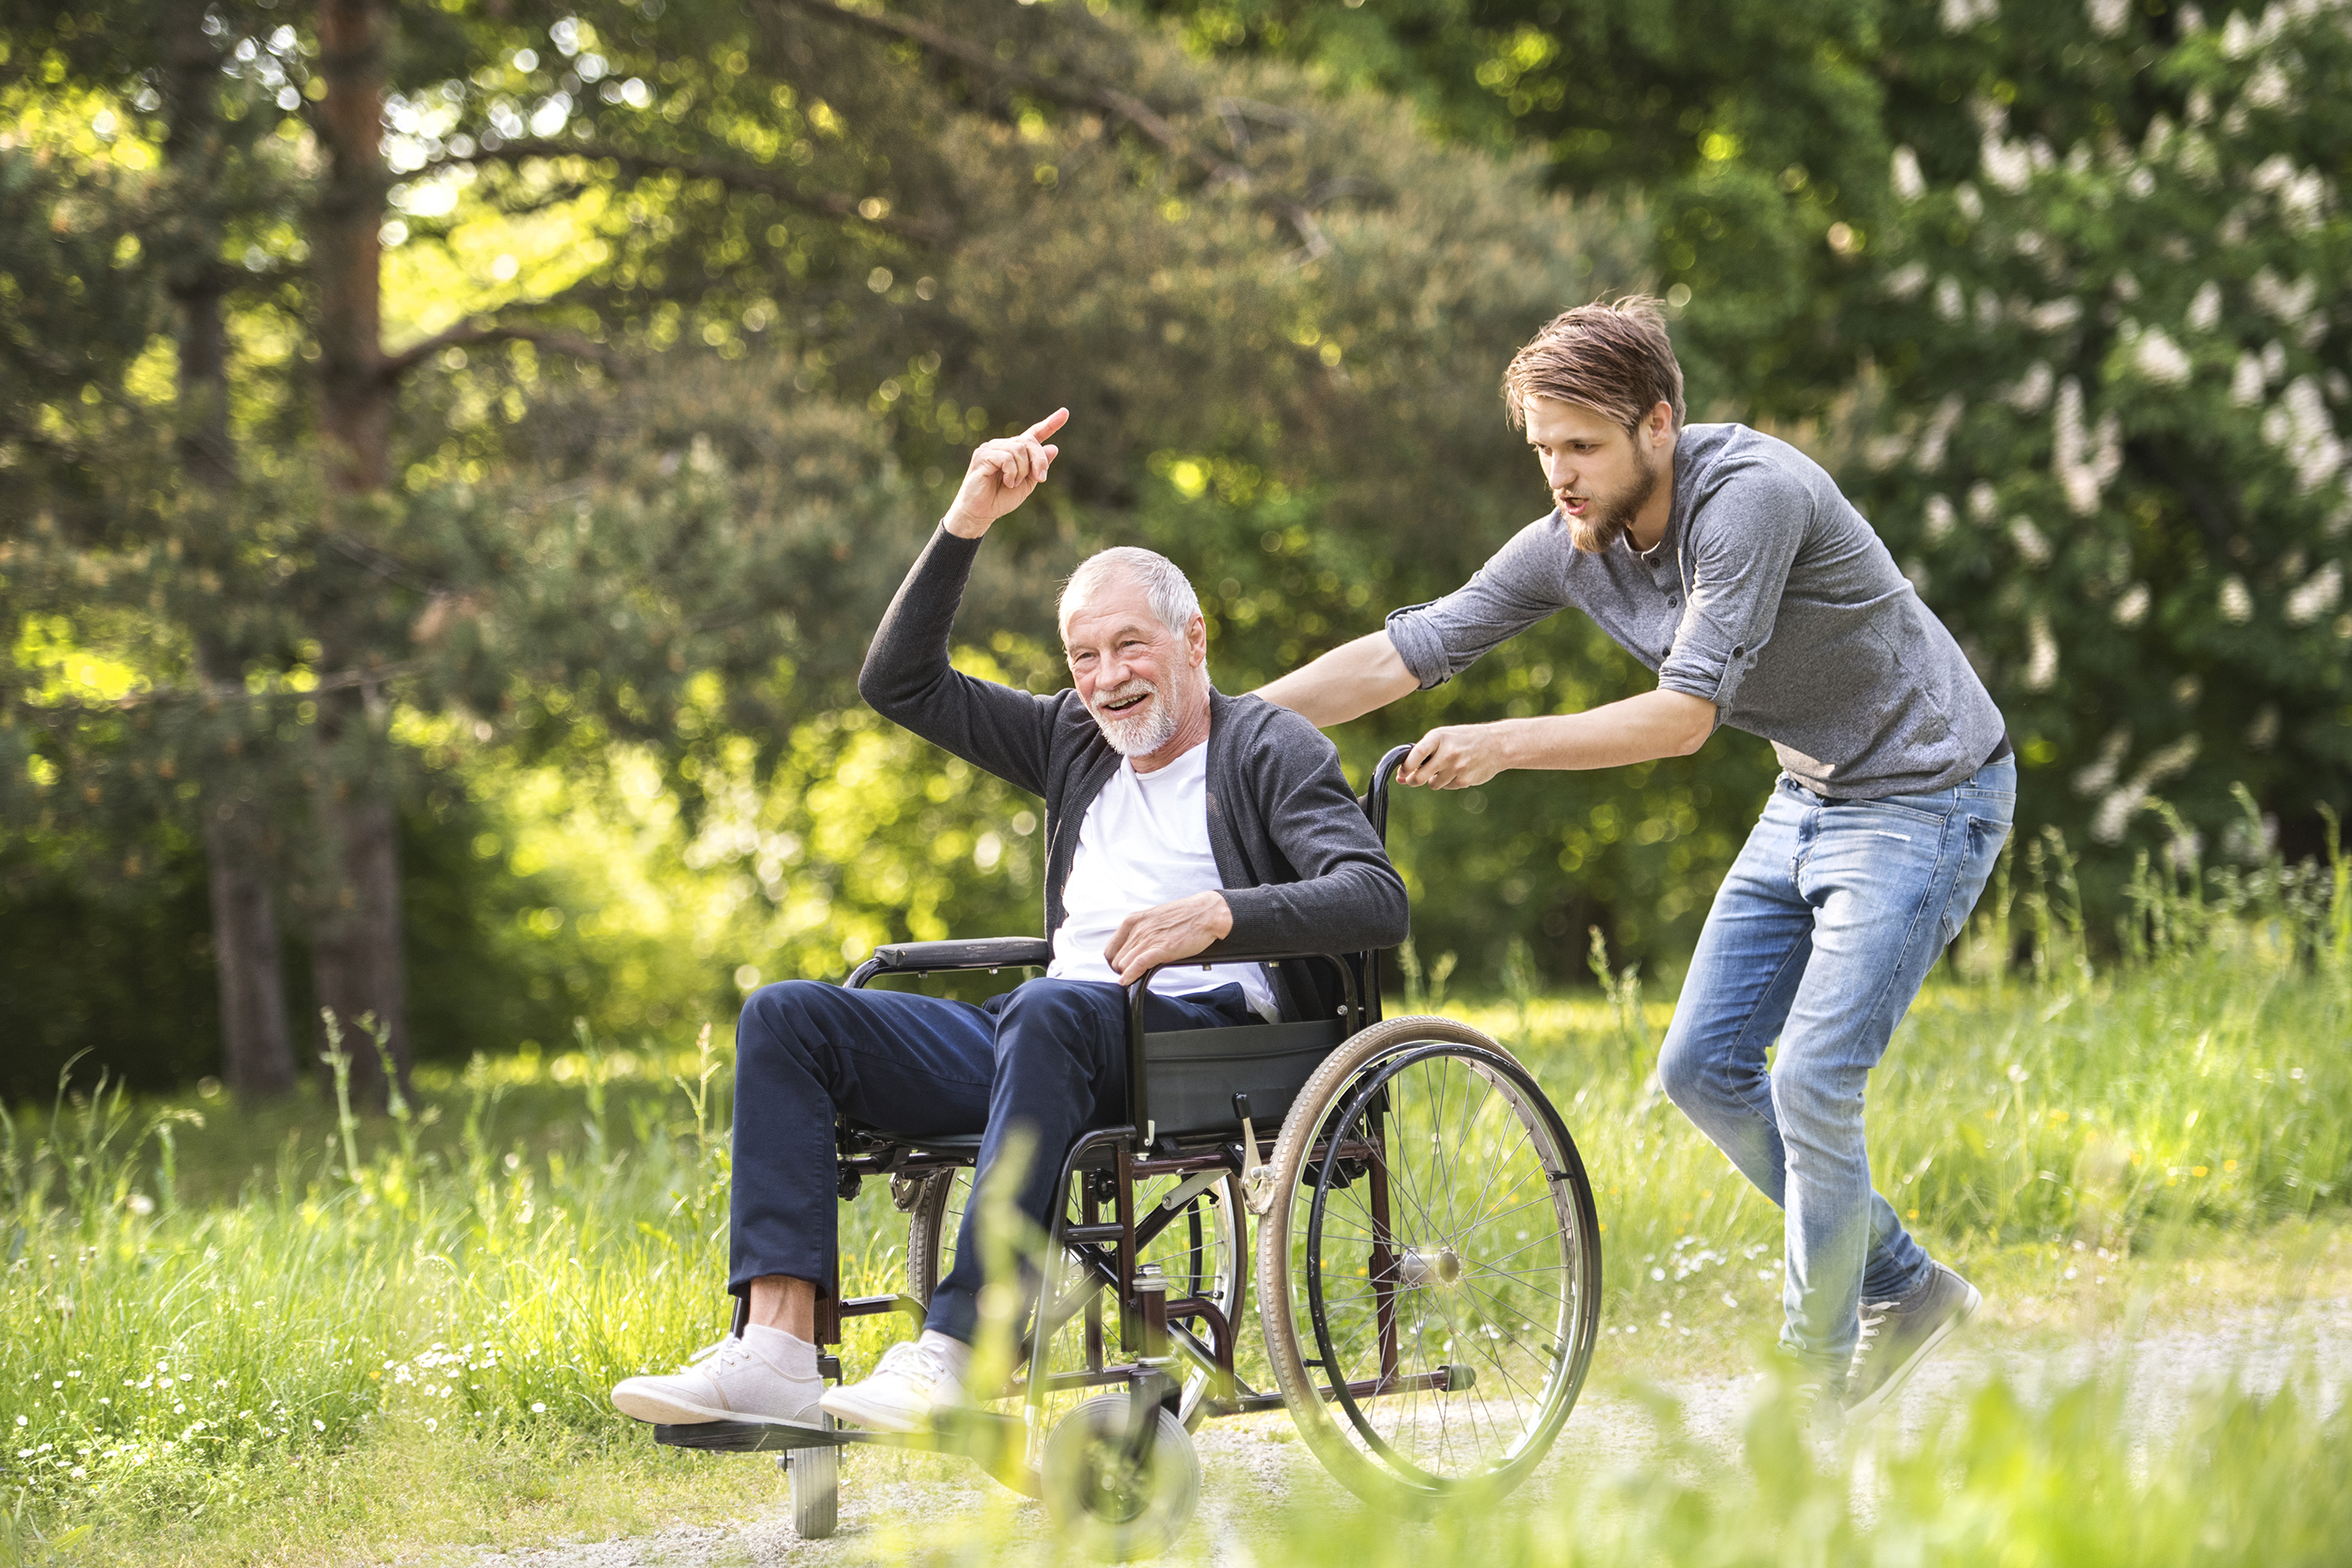 Elderly care | senior care | caring for elderly parents and loved ones